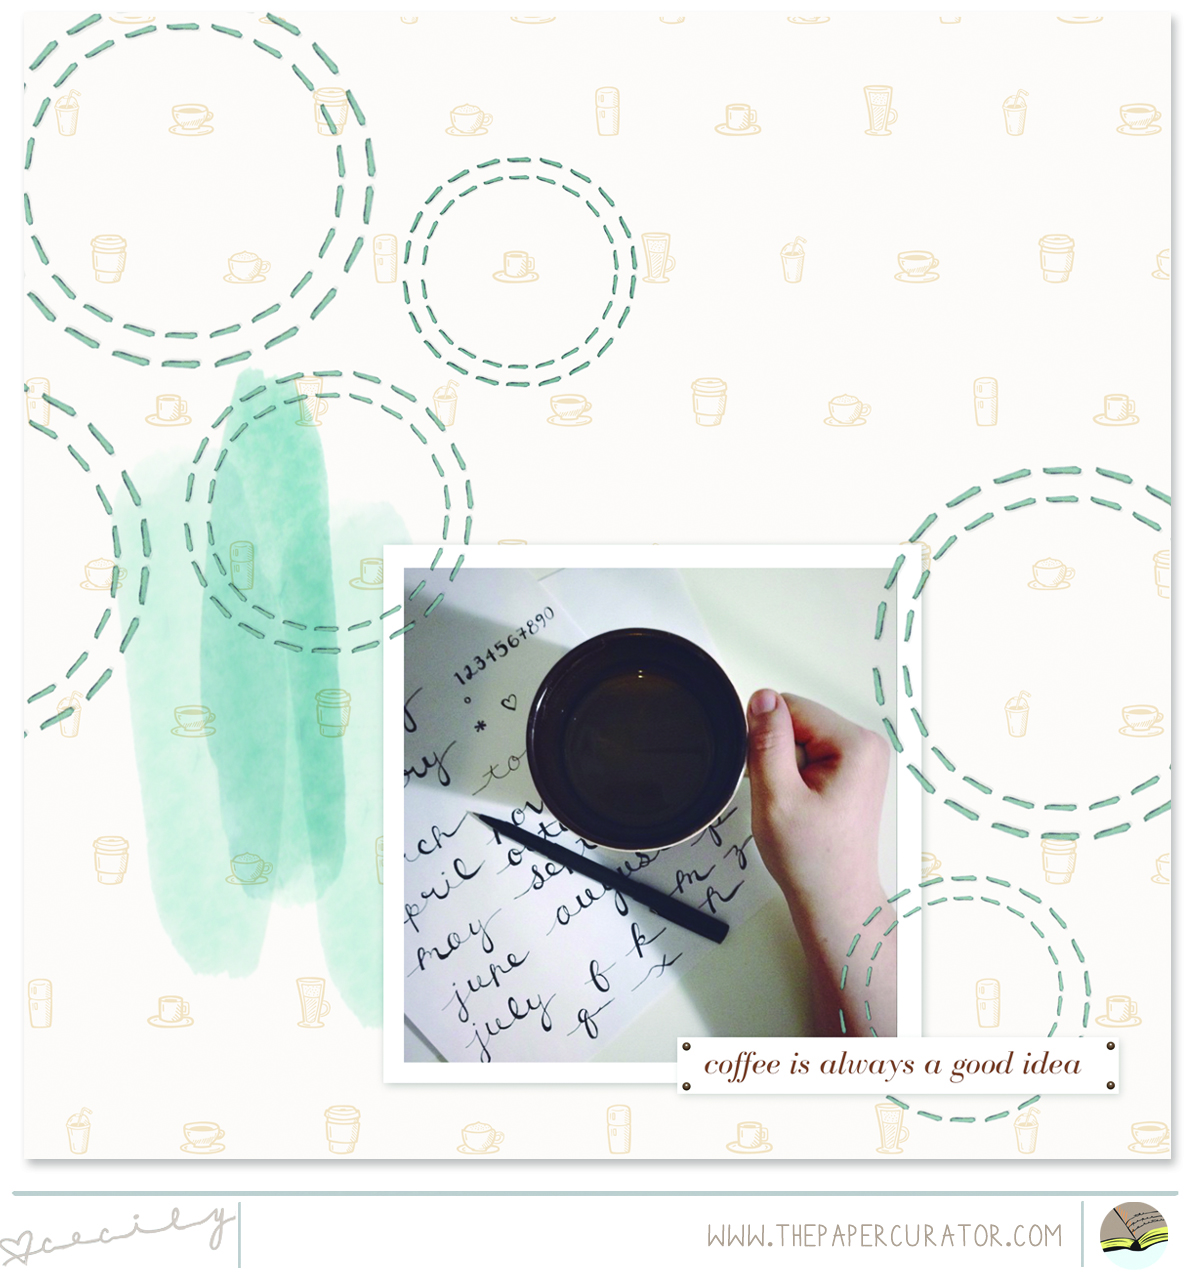 'COFFEE' SCRAPBOOK LAYOUT | THE PAPER CURATOR